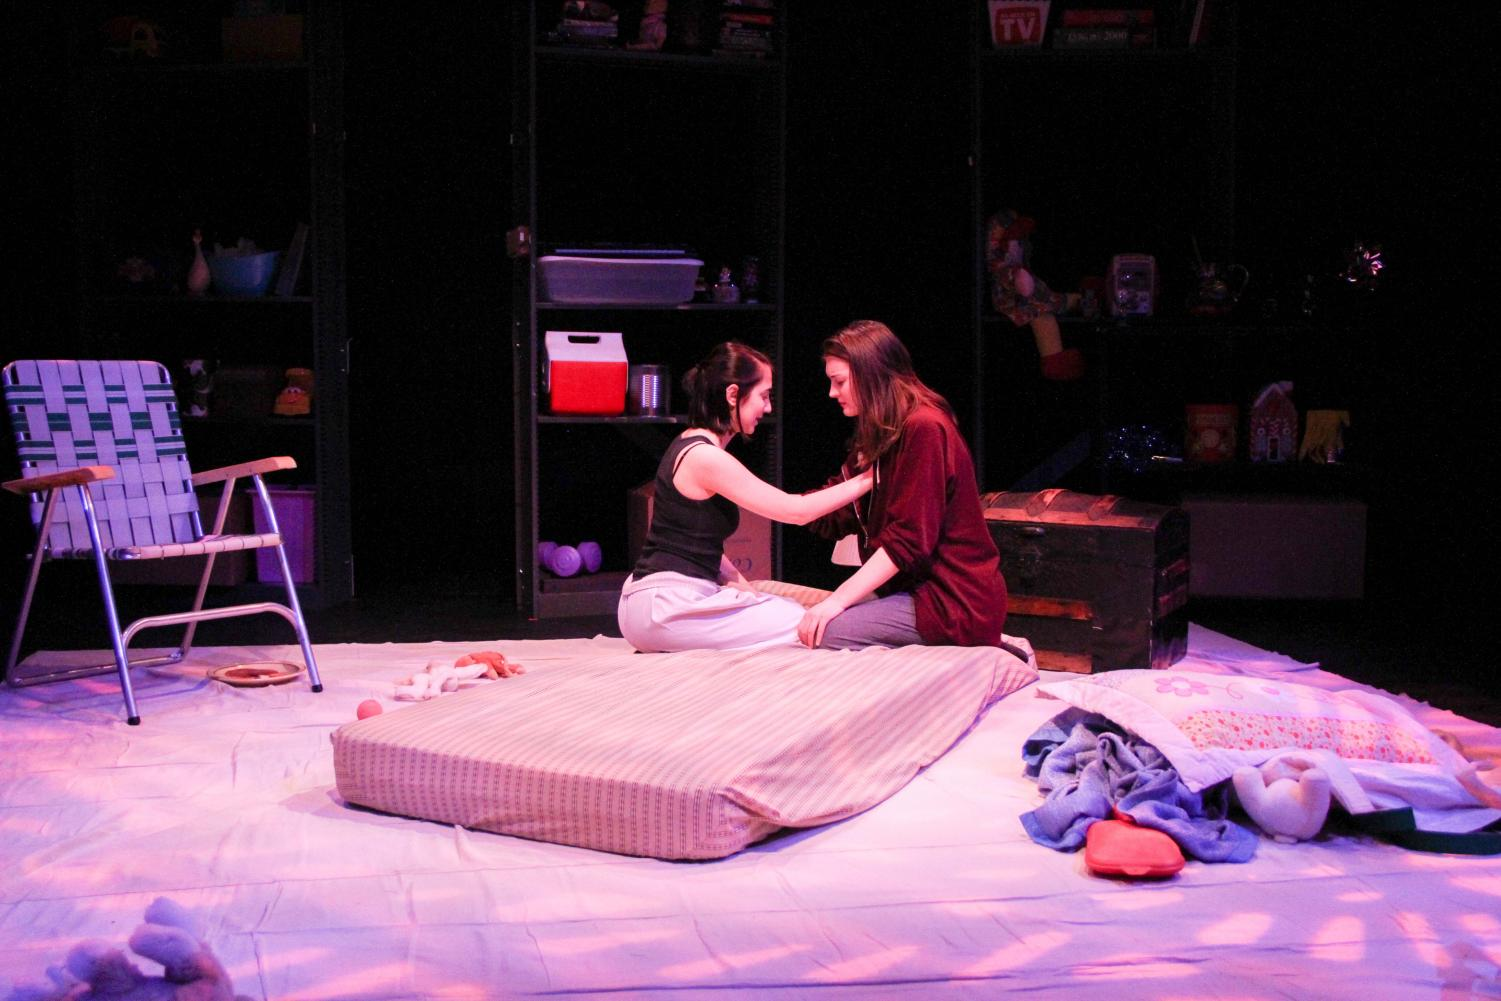 Students stage Chamber Play in Kander Theater. Chamber Play is a dark drama about amnesia and sexual abuse written by Amanda Faye Martin and directed by College senior Zoë Kushlefsky.